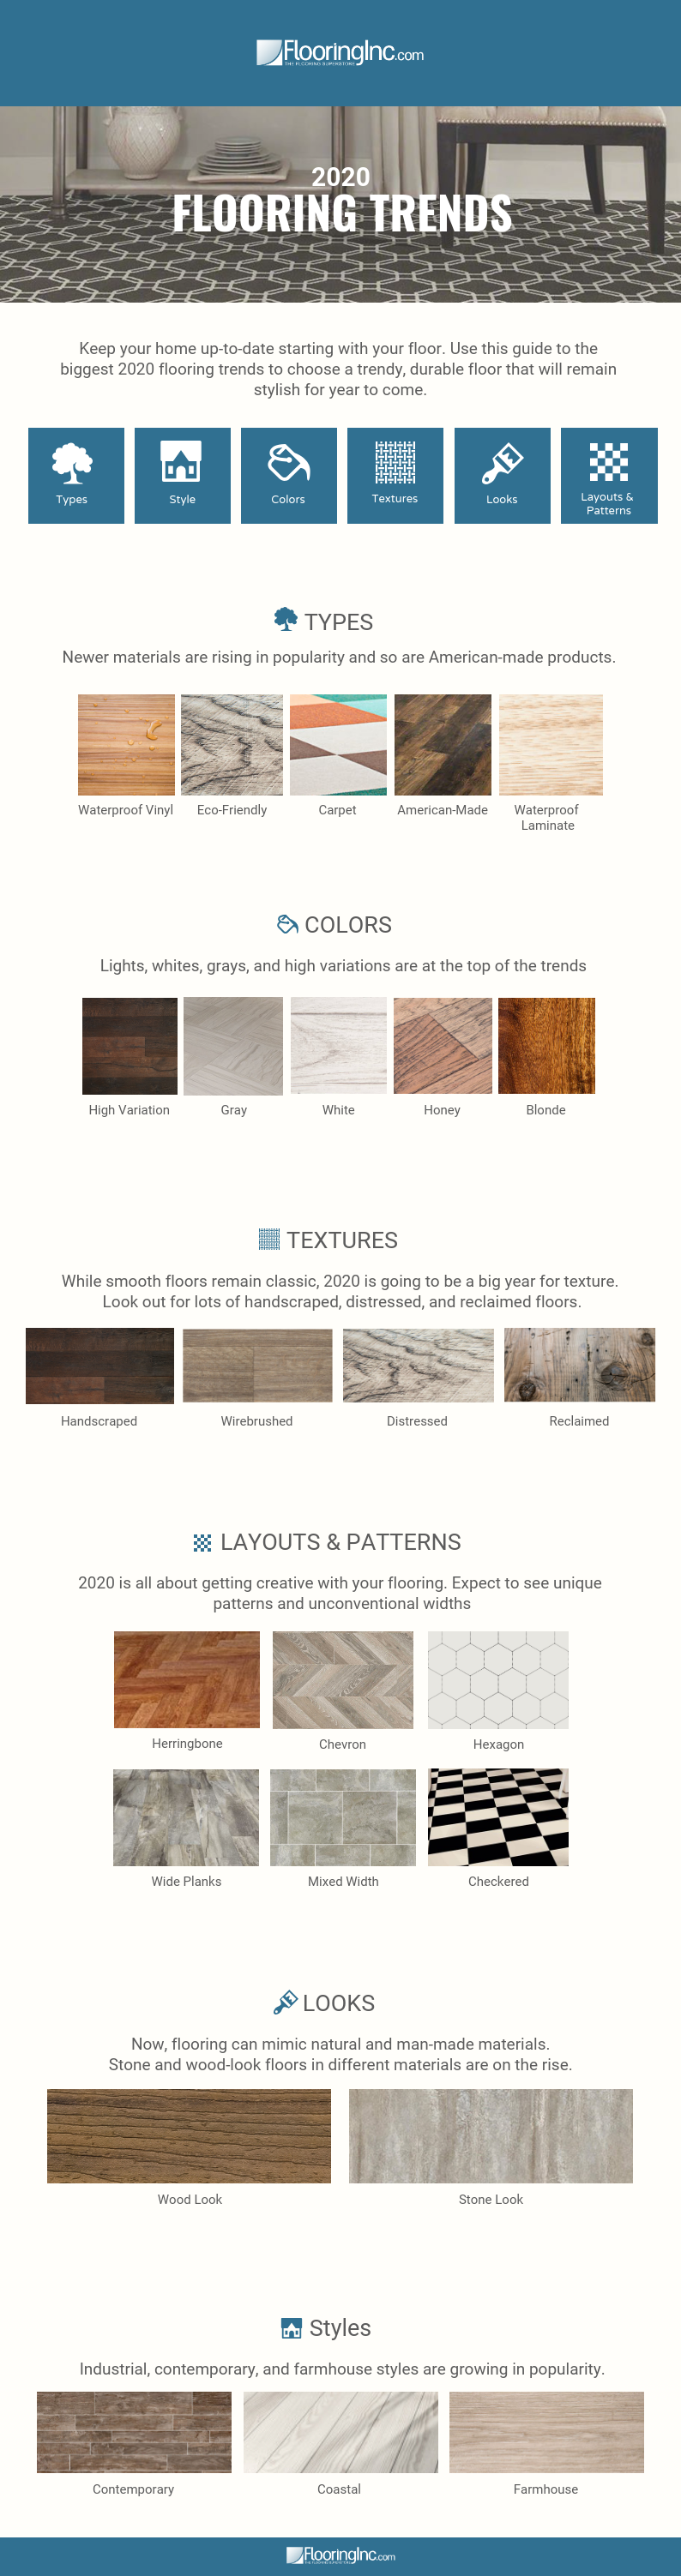 Chart showing the biggest flooring trends for 2020